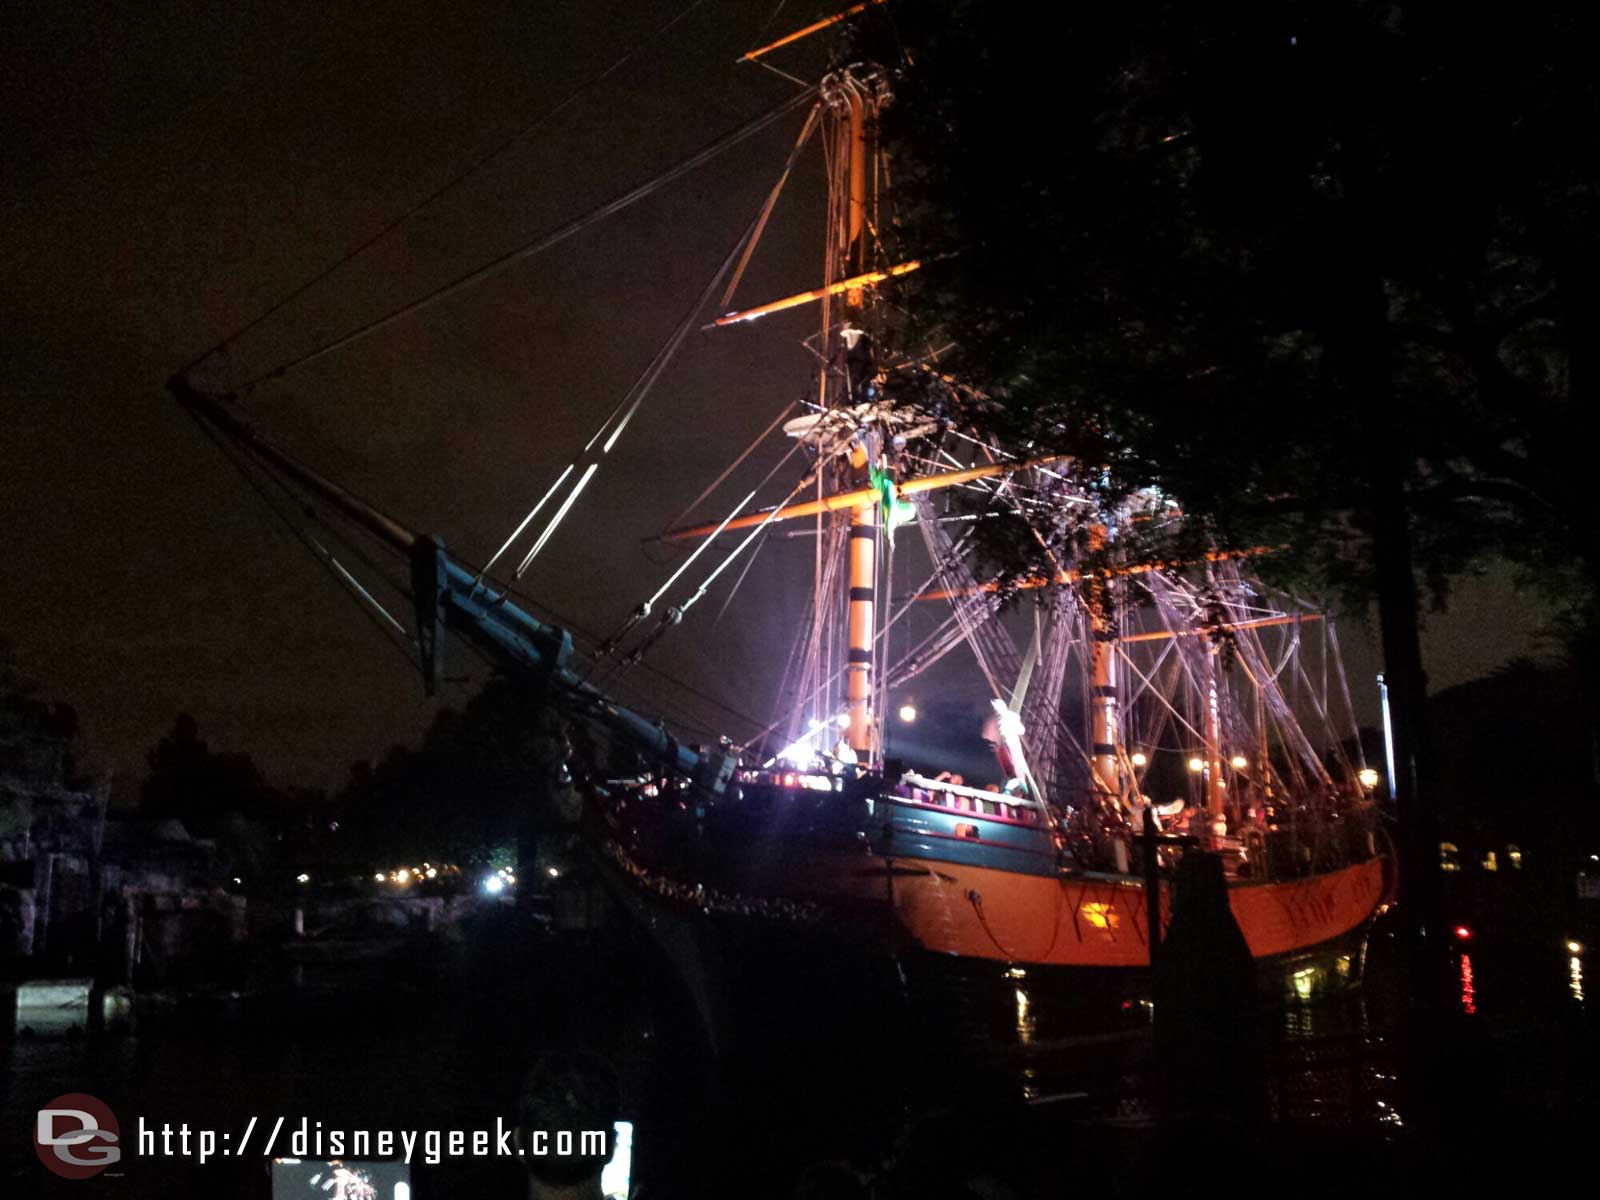 The Columbia passing by during Fantasmic!